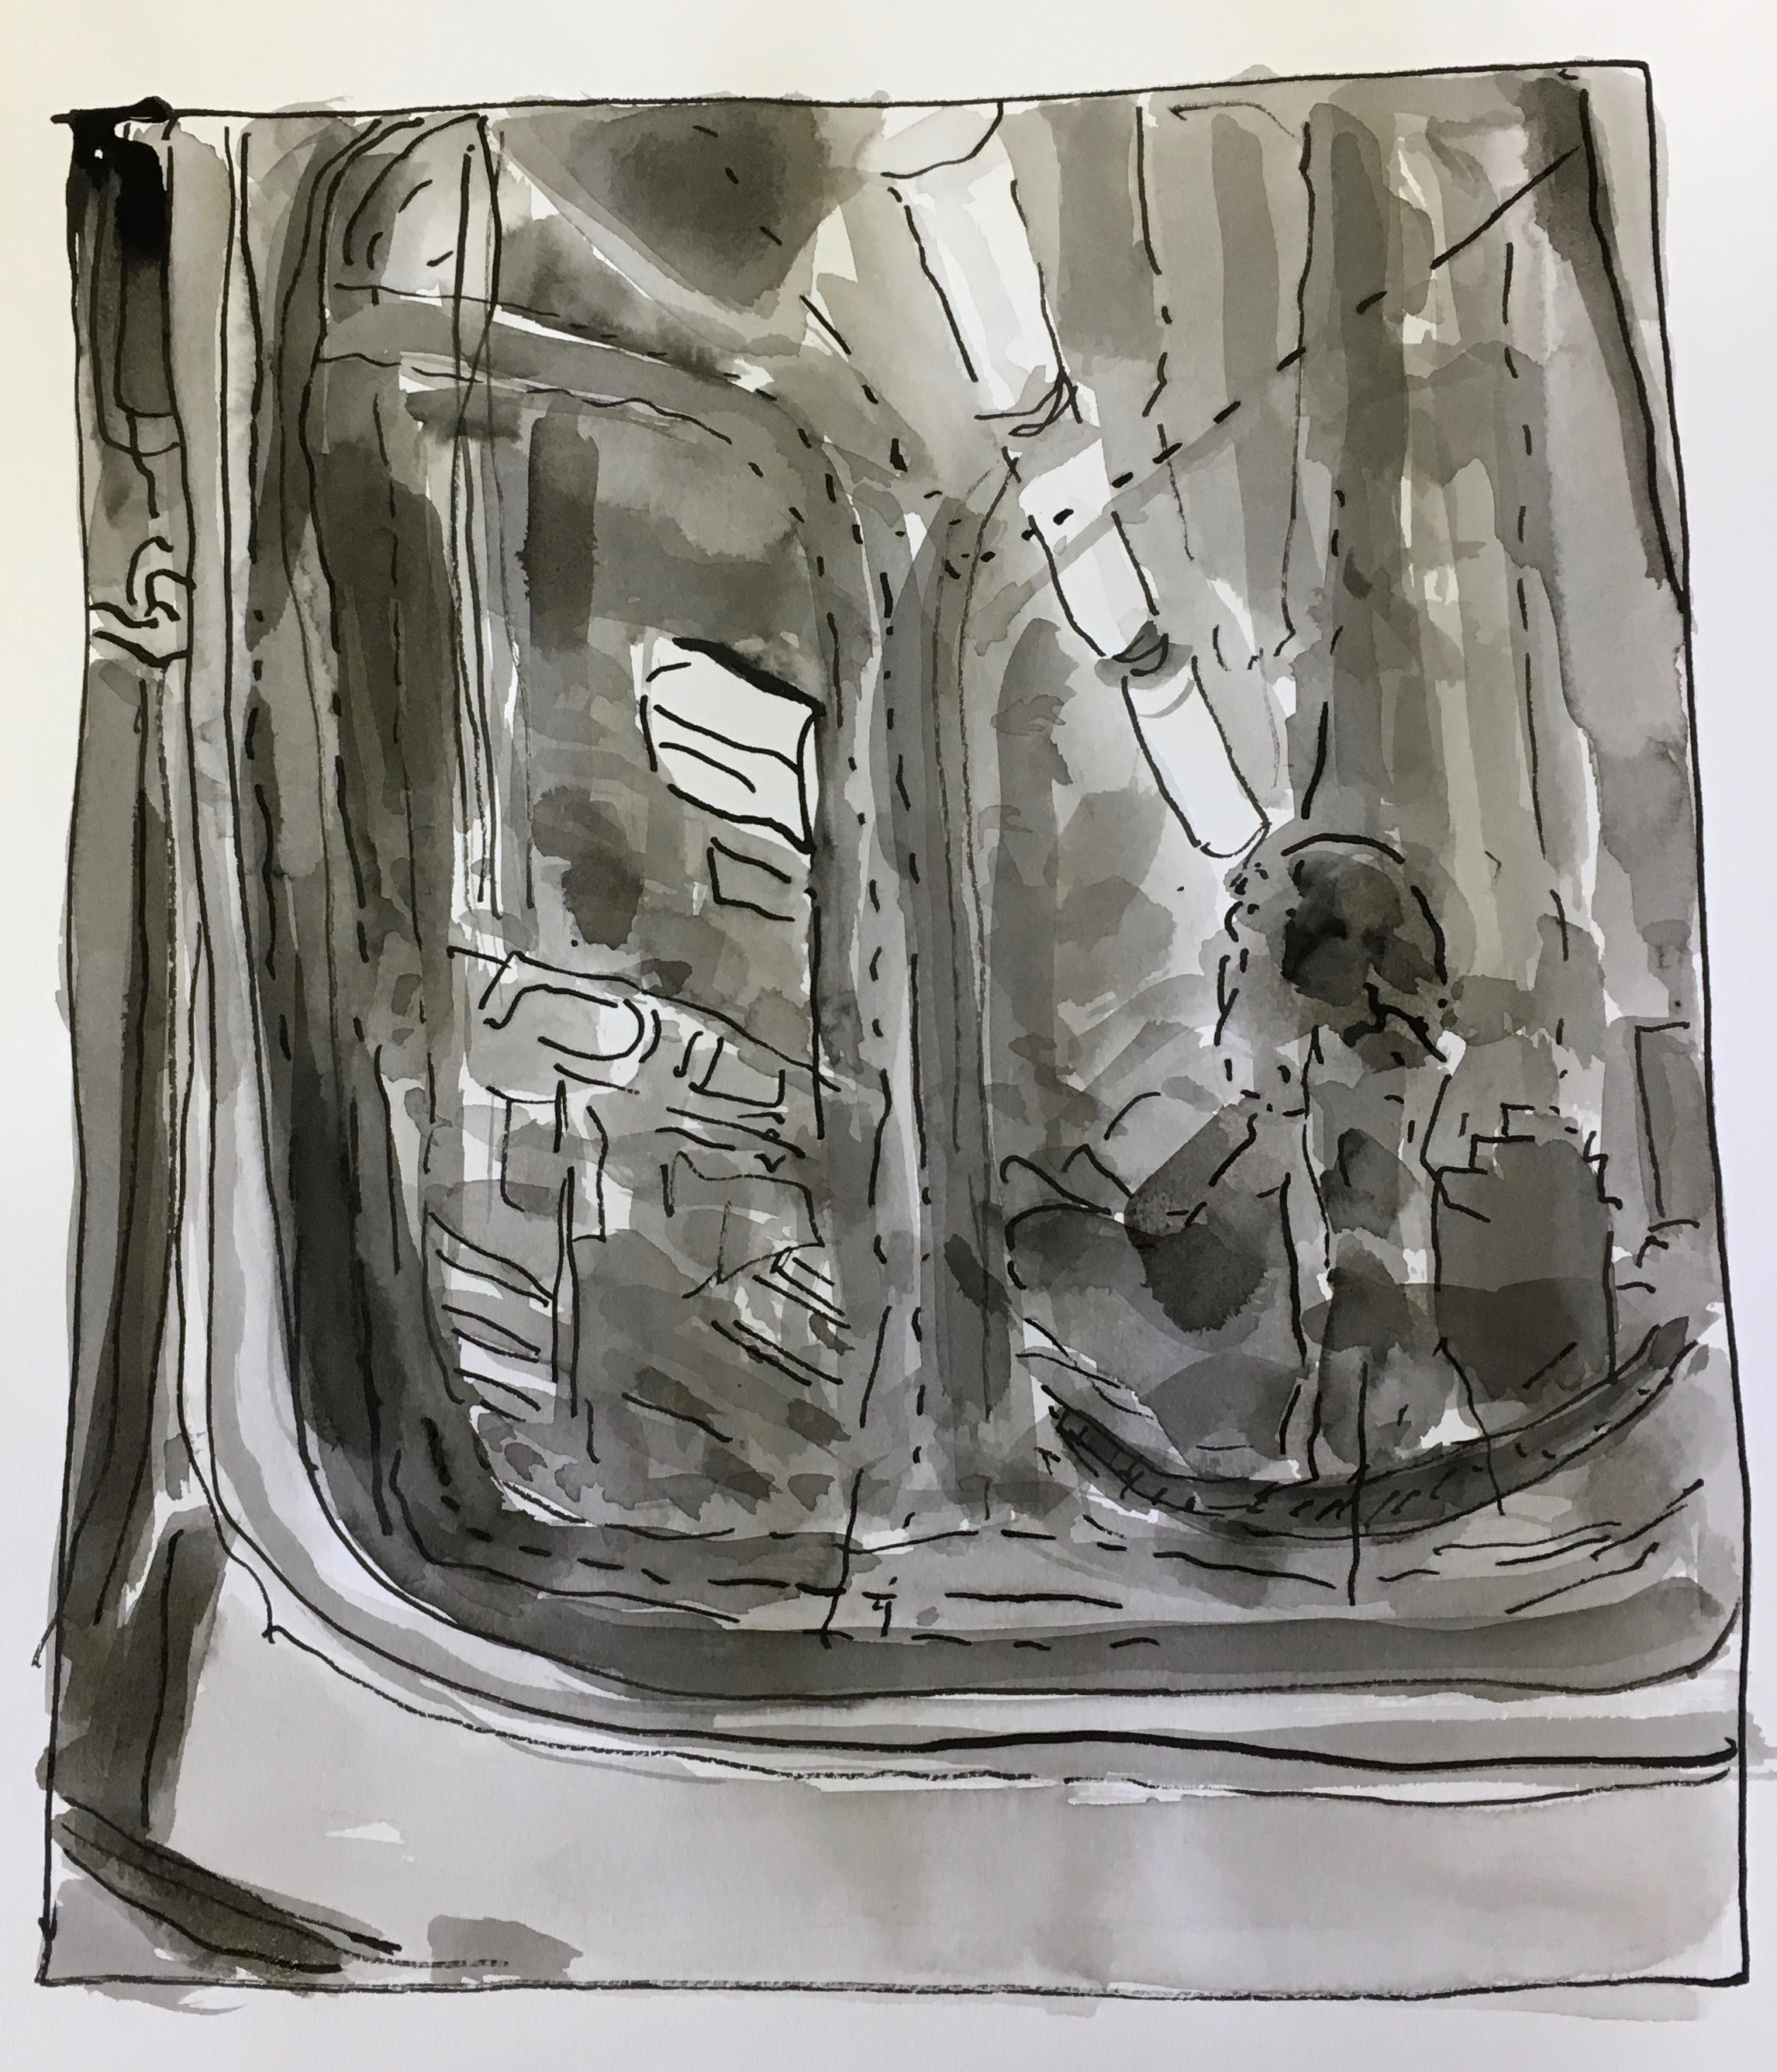 Subway Window, 2019, ink on paper, 9x12 inches